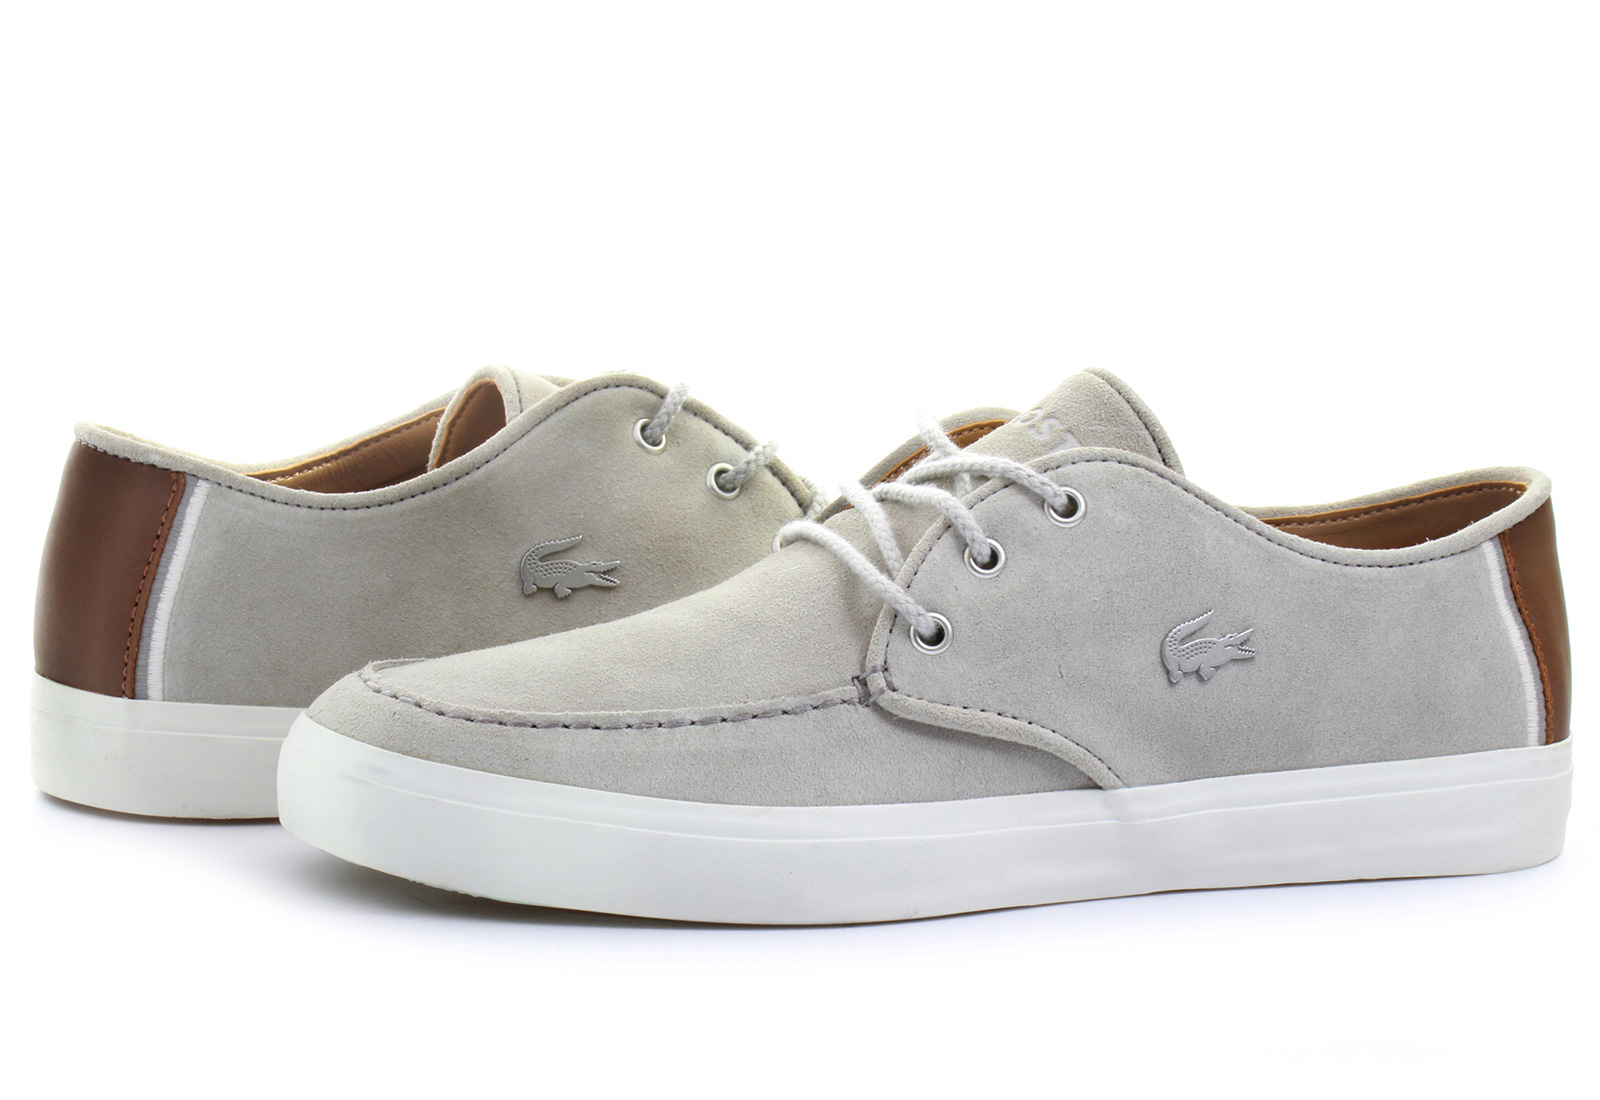 Lacoste Grey Leather Shoes